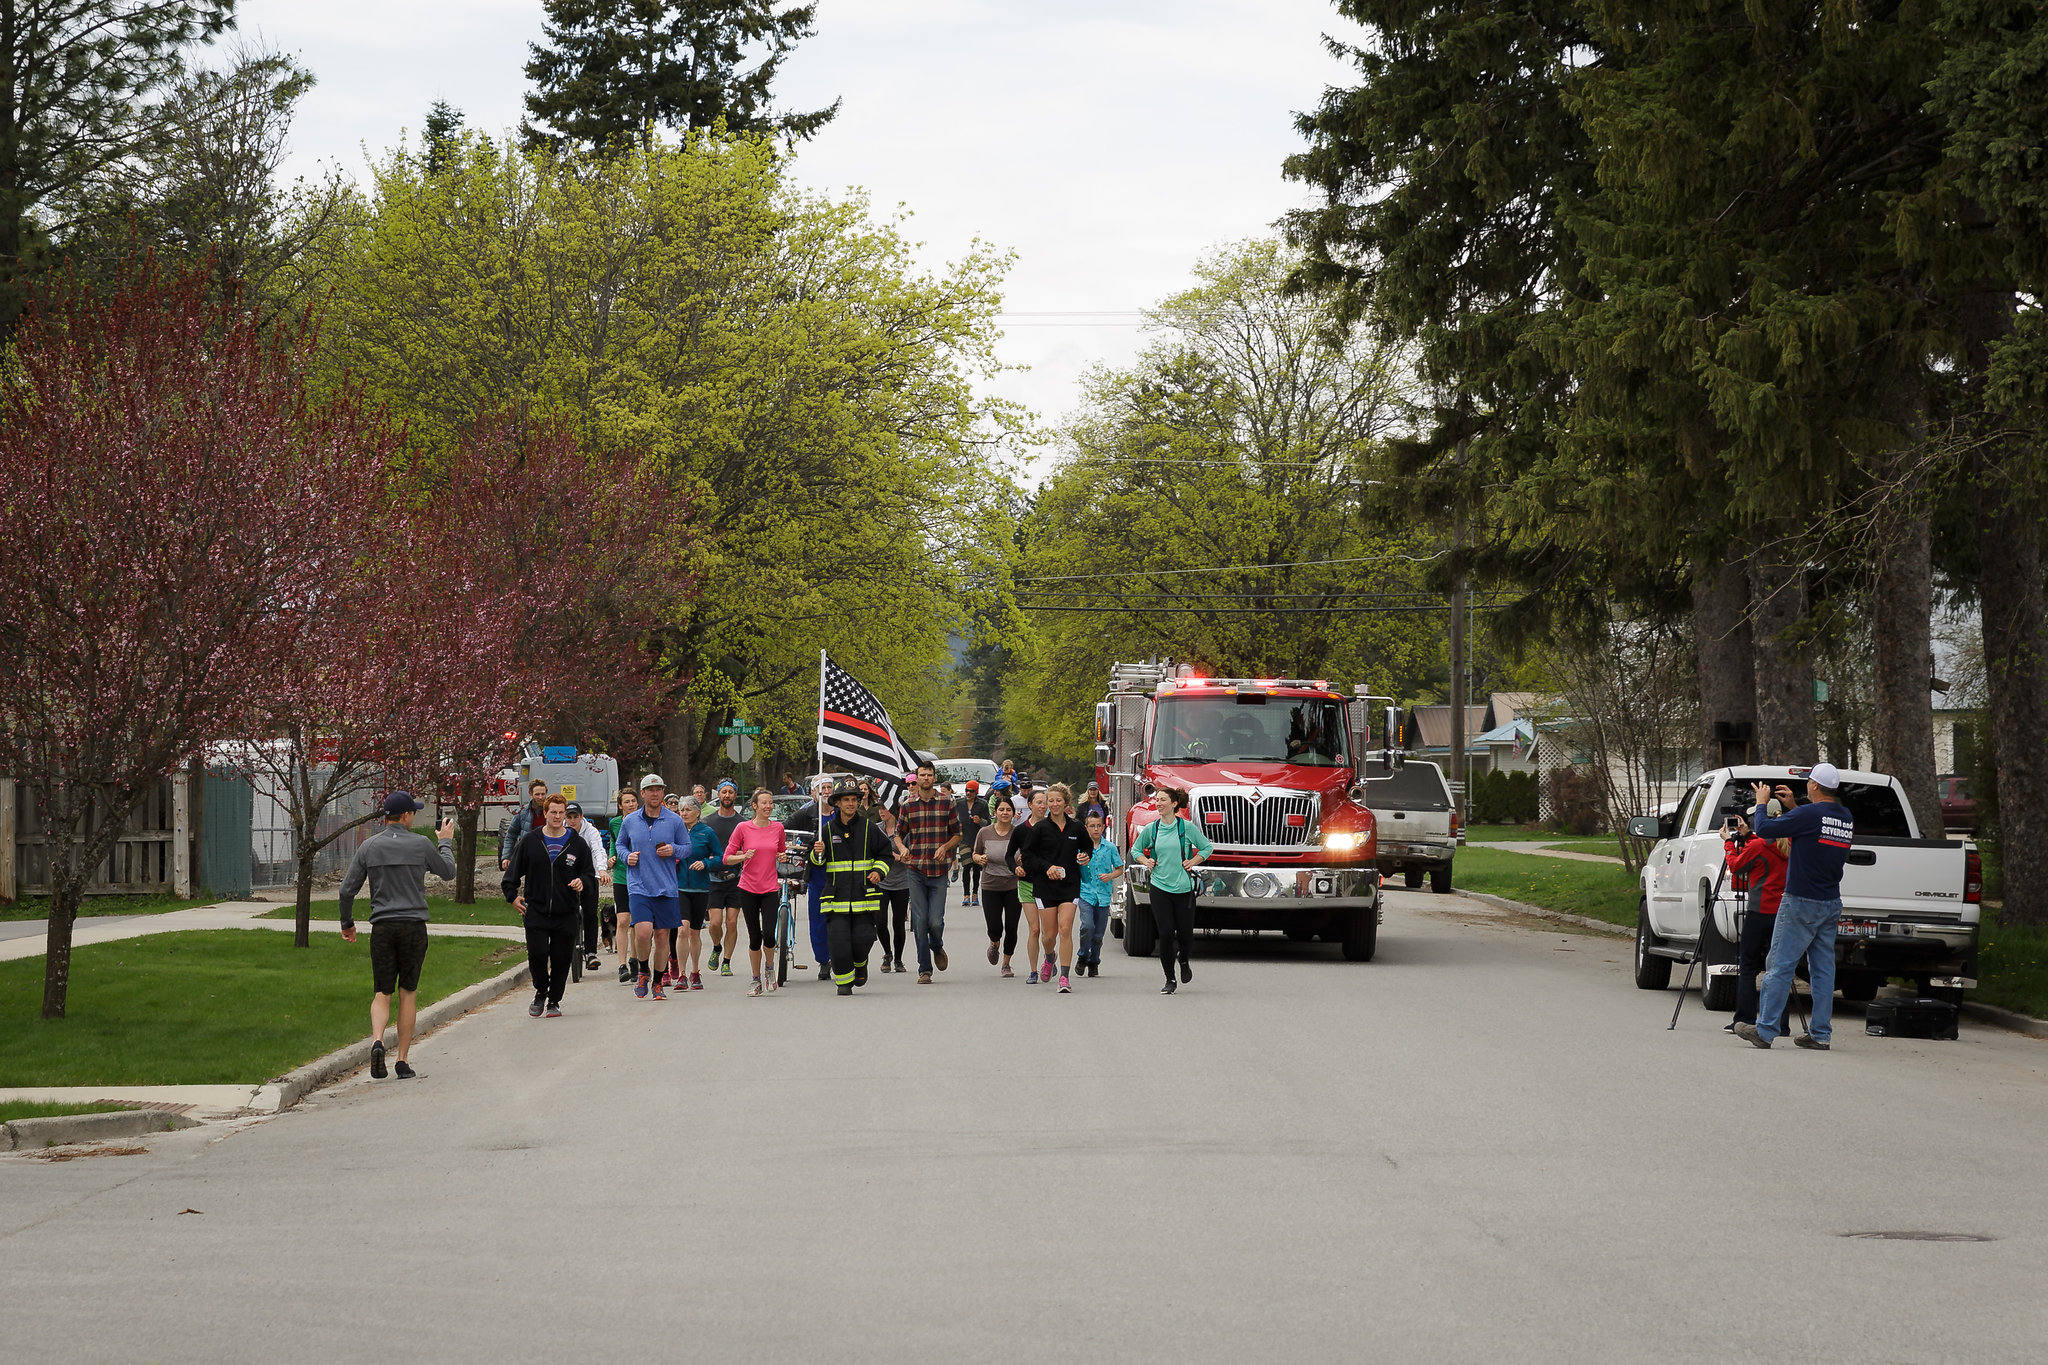 Plant-Positive-AmyHendersonPhotography-100 Mile for Cancer Prevention-180429_Gwen100_173_gc.jpg